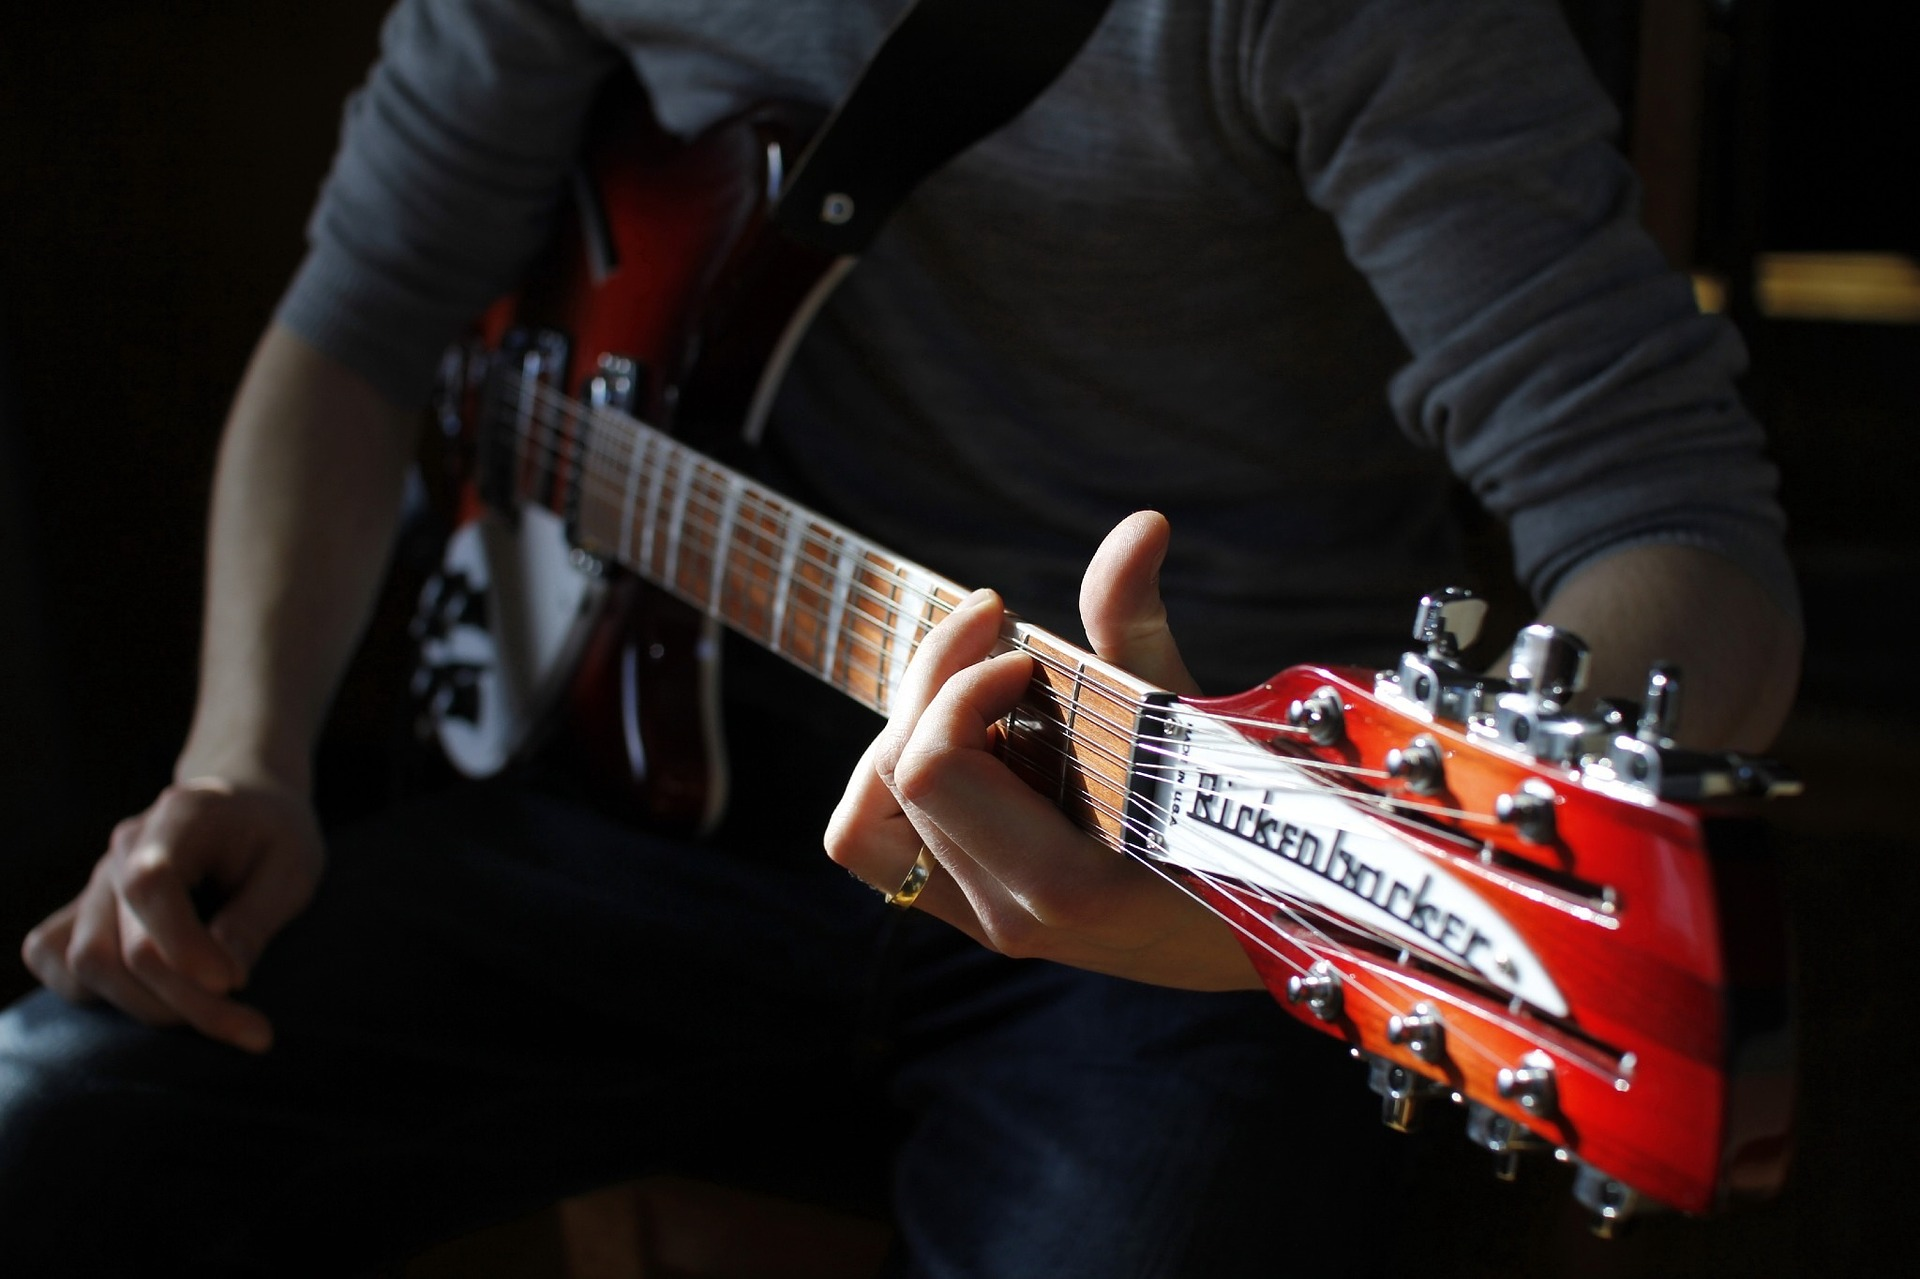 Hihgh-end guitars, like Rickenbackers, are a source of personal gratification